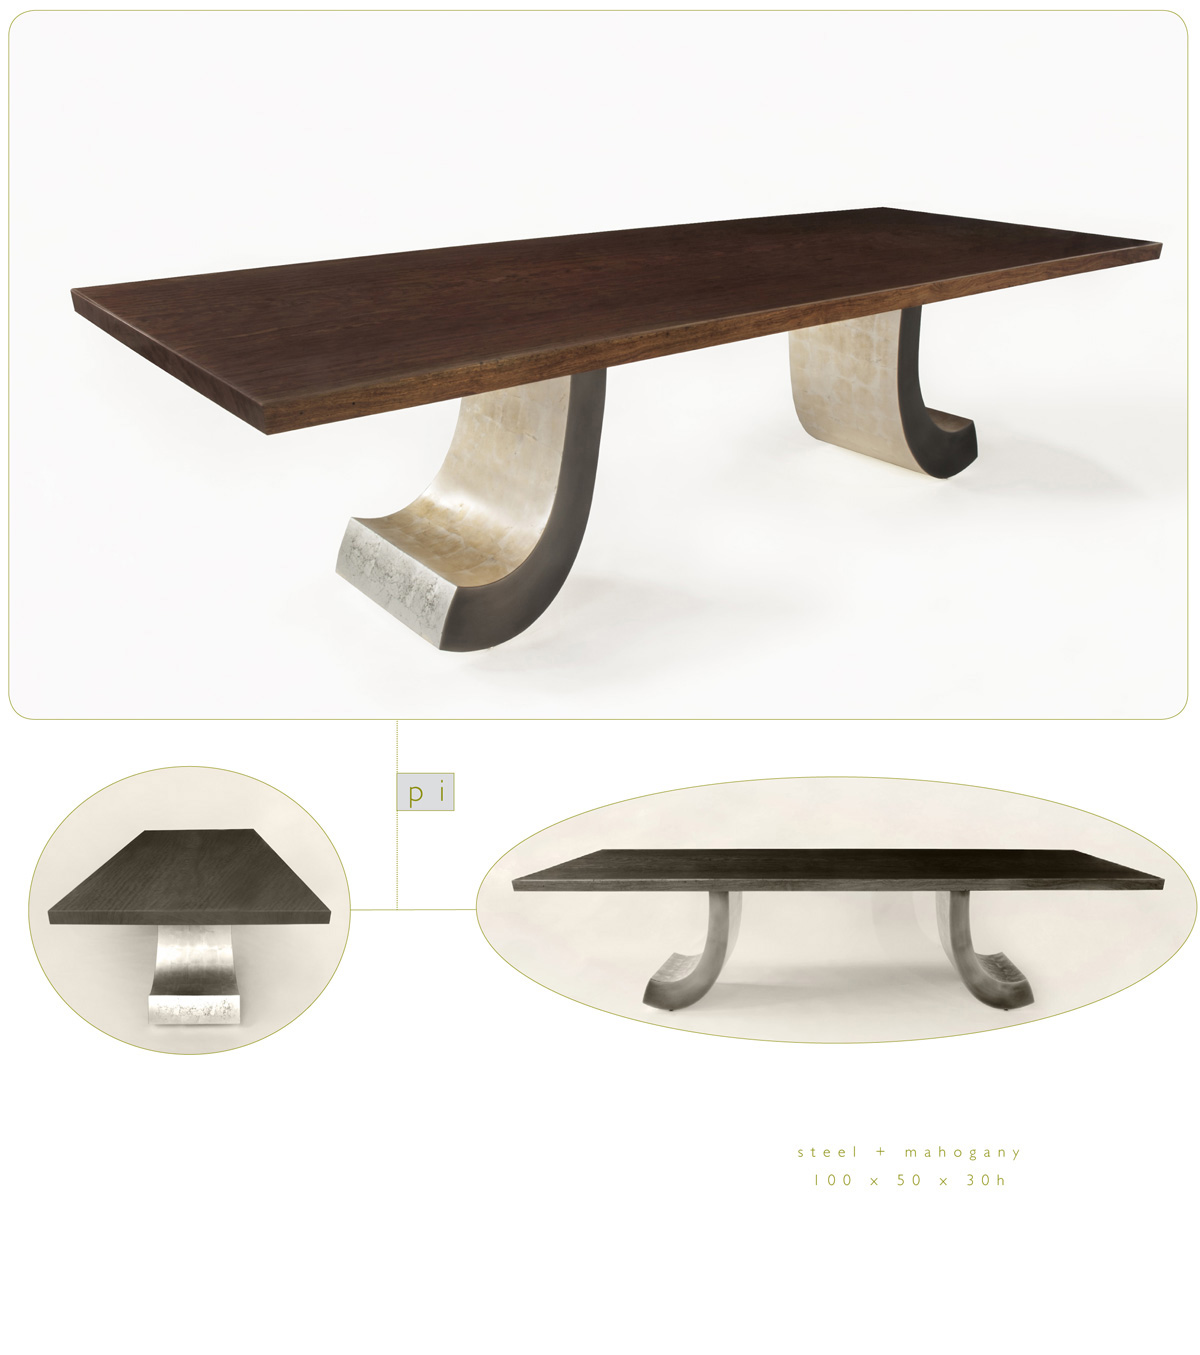 Pi is a contemporary dining table made out of steel and mahogany measuring 100 x 50 x 30 inches made by Chad Manley Design.